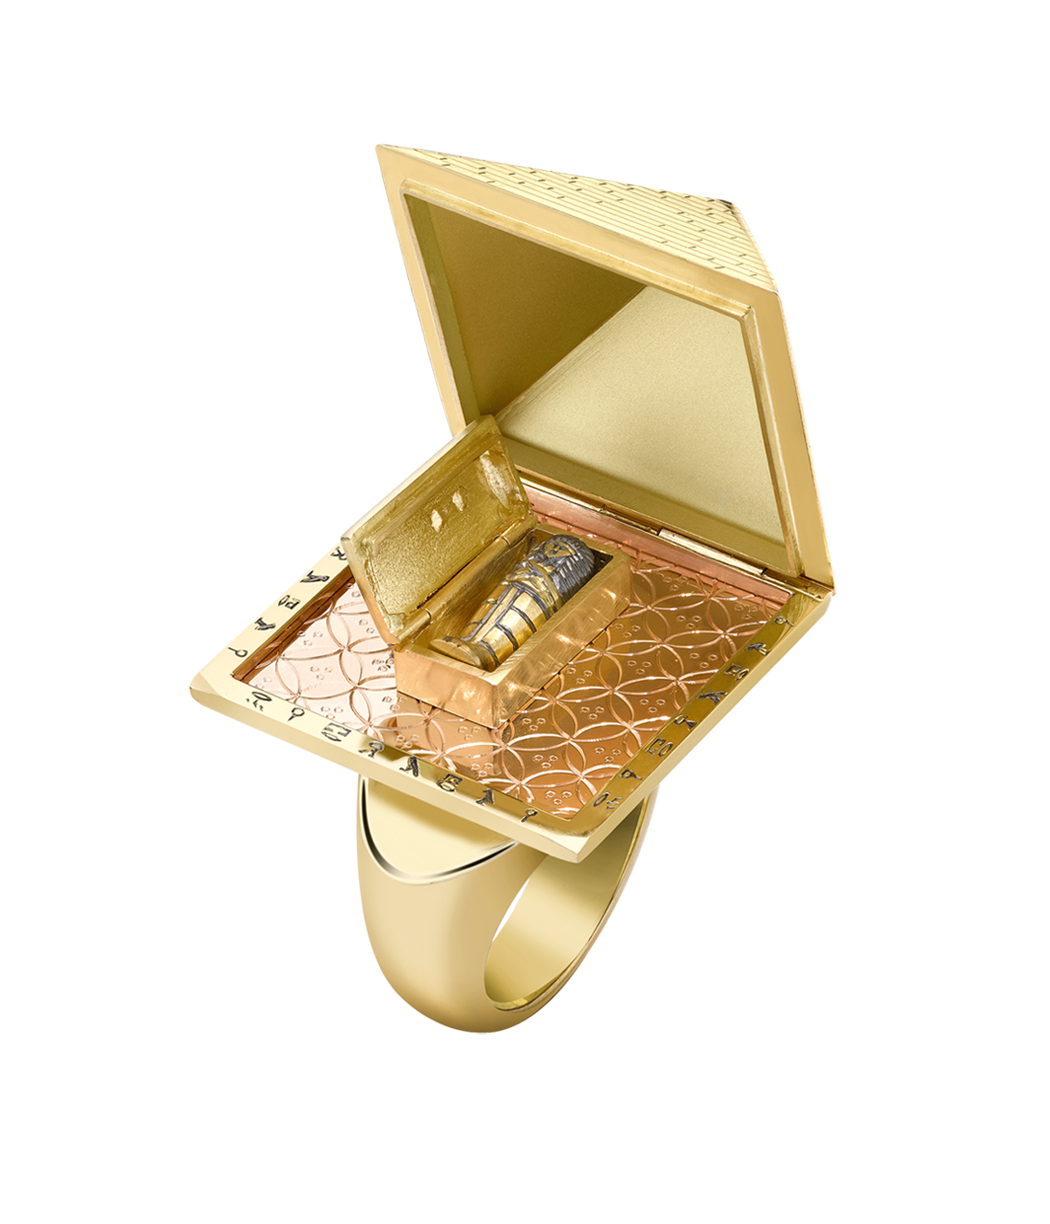 Theo Fennell - The Pyramid Ring - not sure how comfortable or practical this ring would be to actually wear, but it certainly would be a talking piece!